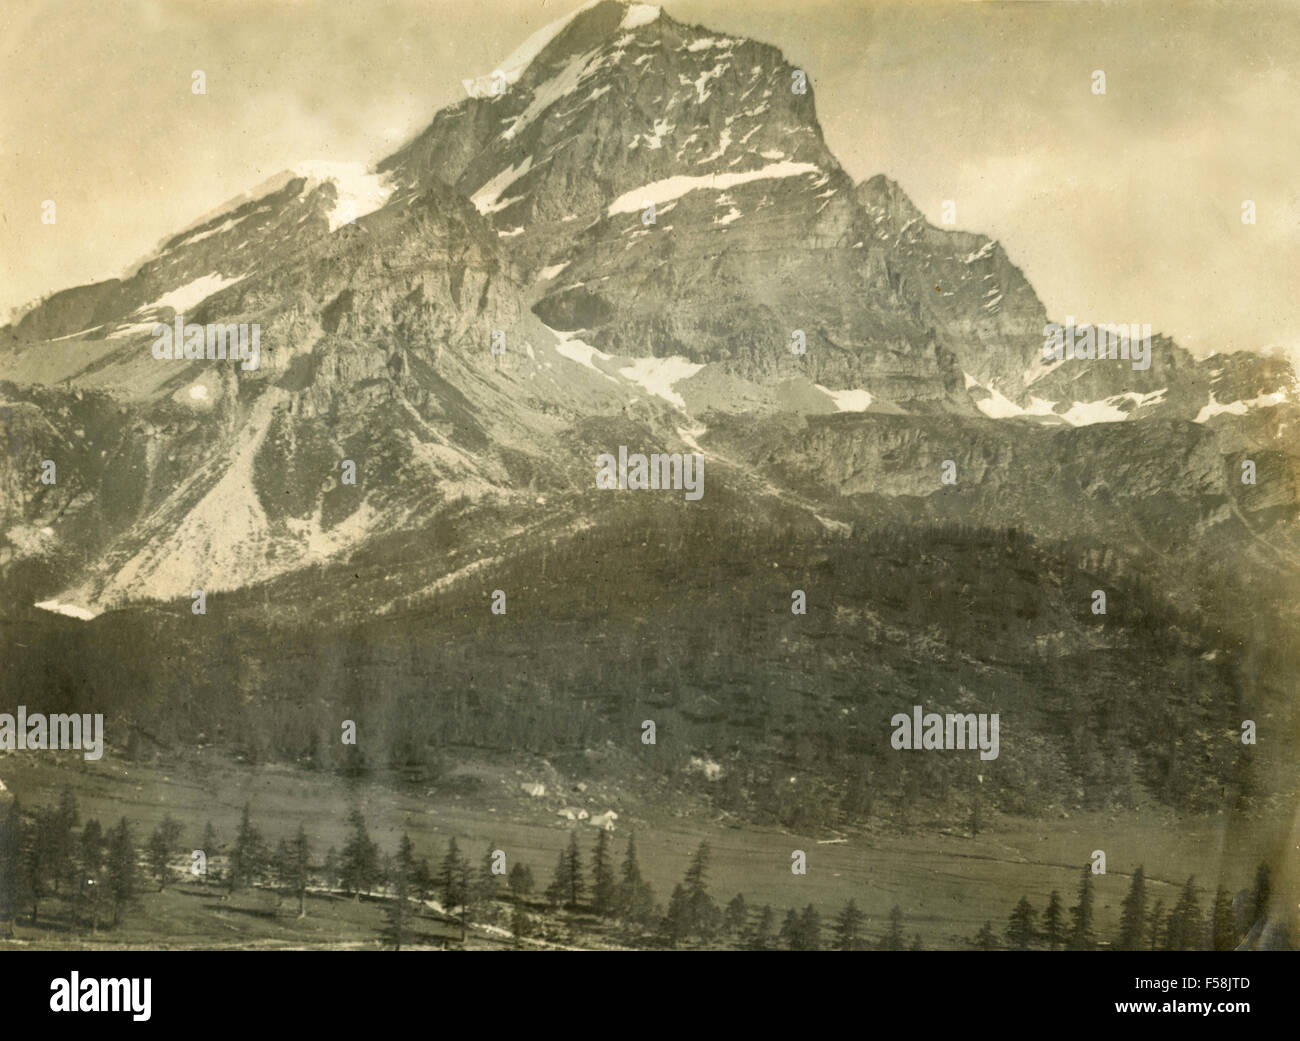 The Mont Blanc seen from Courmayeur, Italy - Stock Image